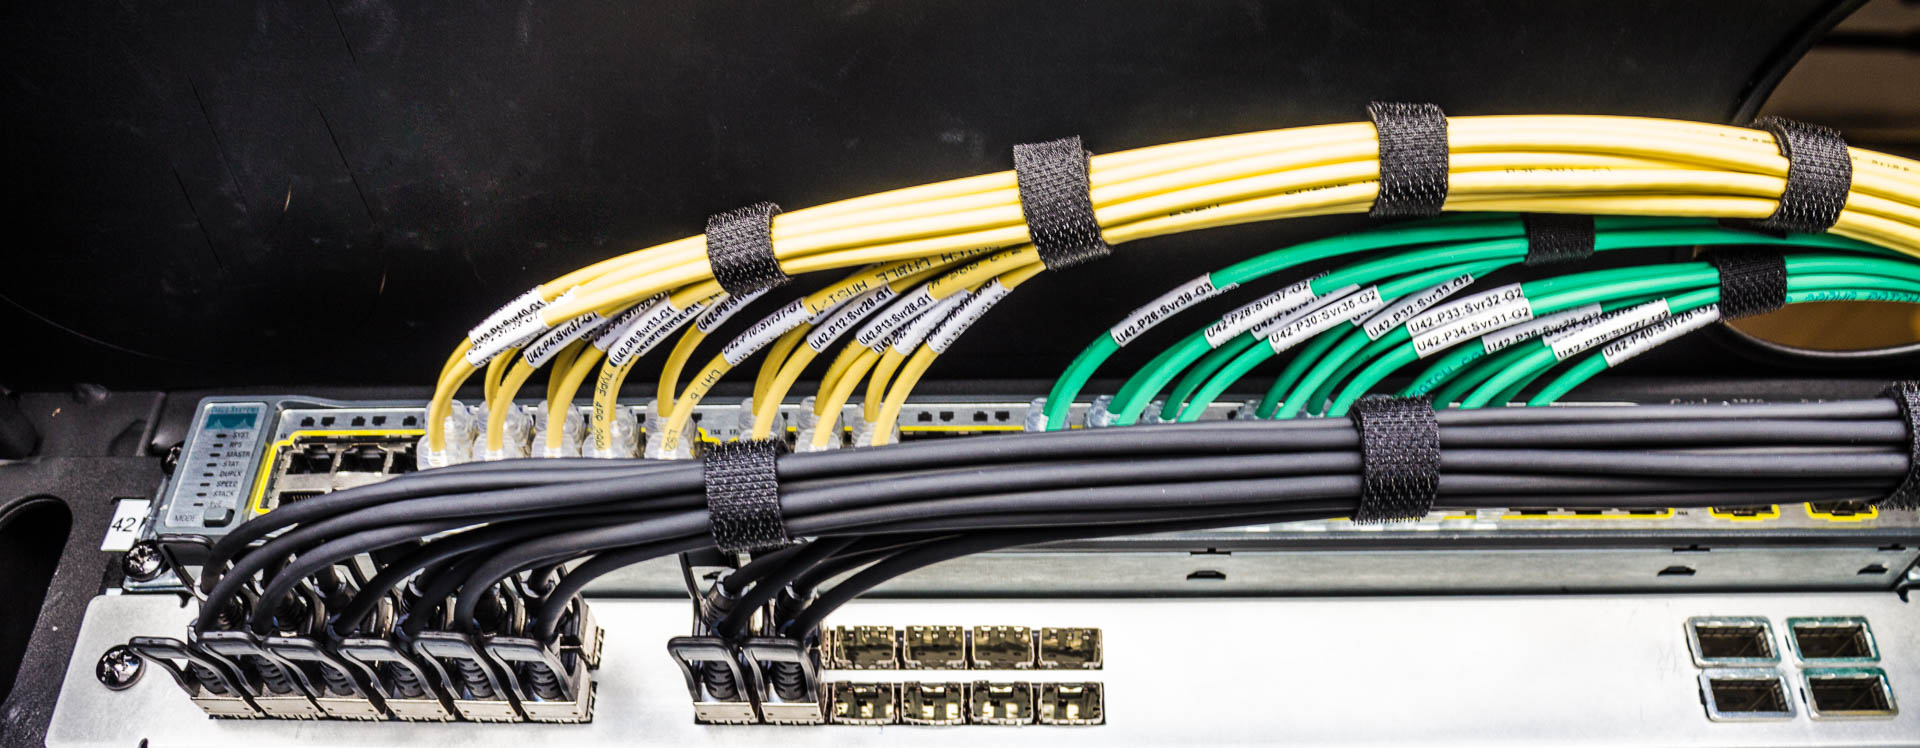 Beautiful Cable Management Pactech S Data Center Cables